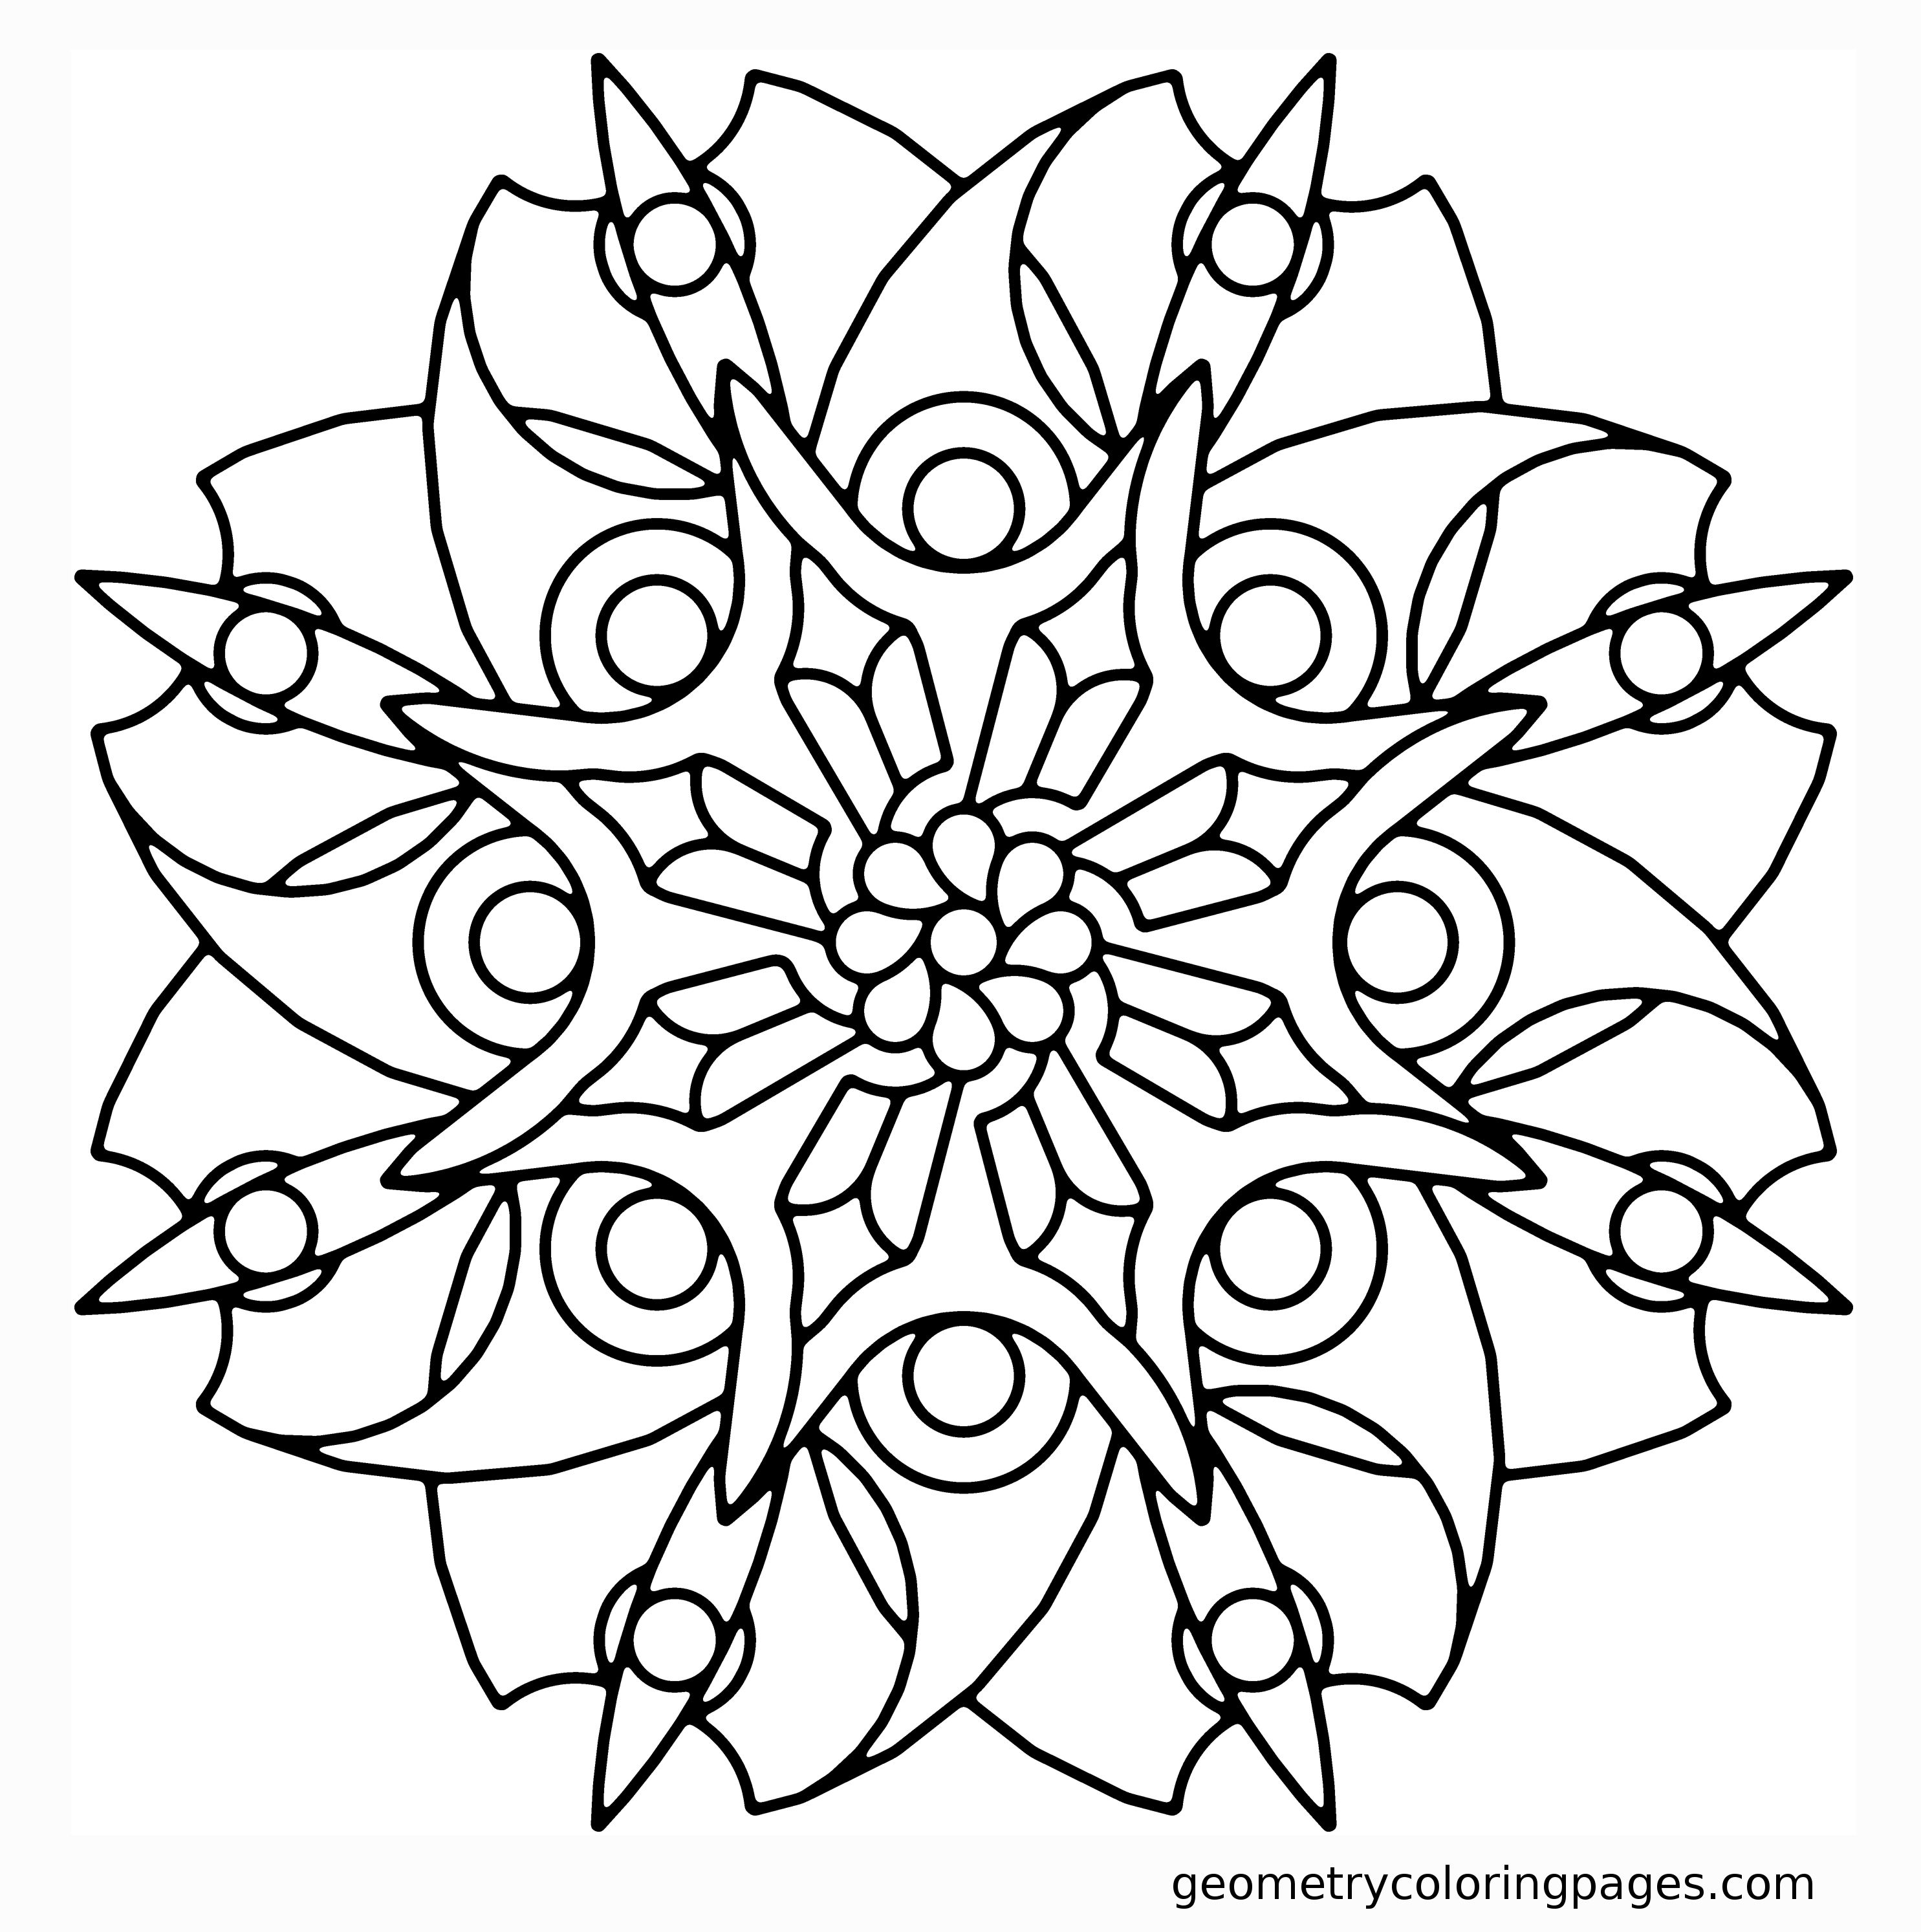 abstract flower coloring pages abstract flowers drawing at getdrawings free download abstract flower pages coloring